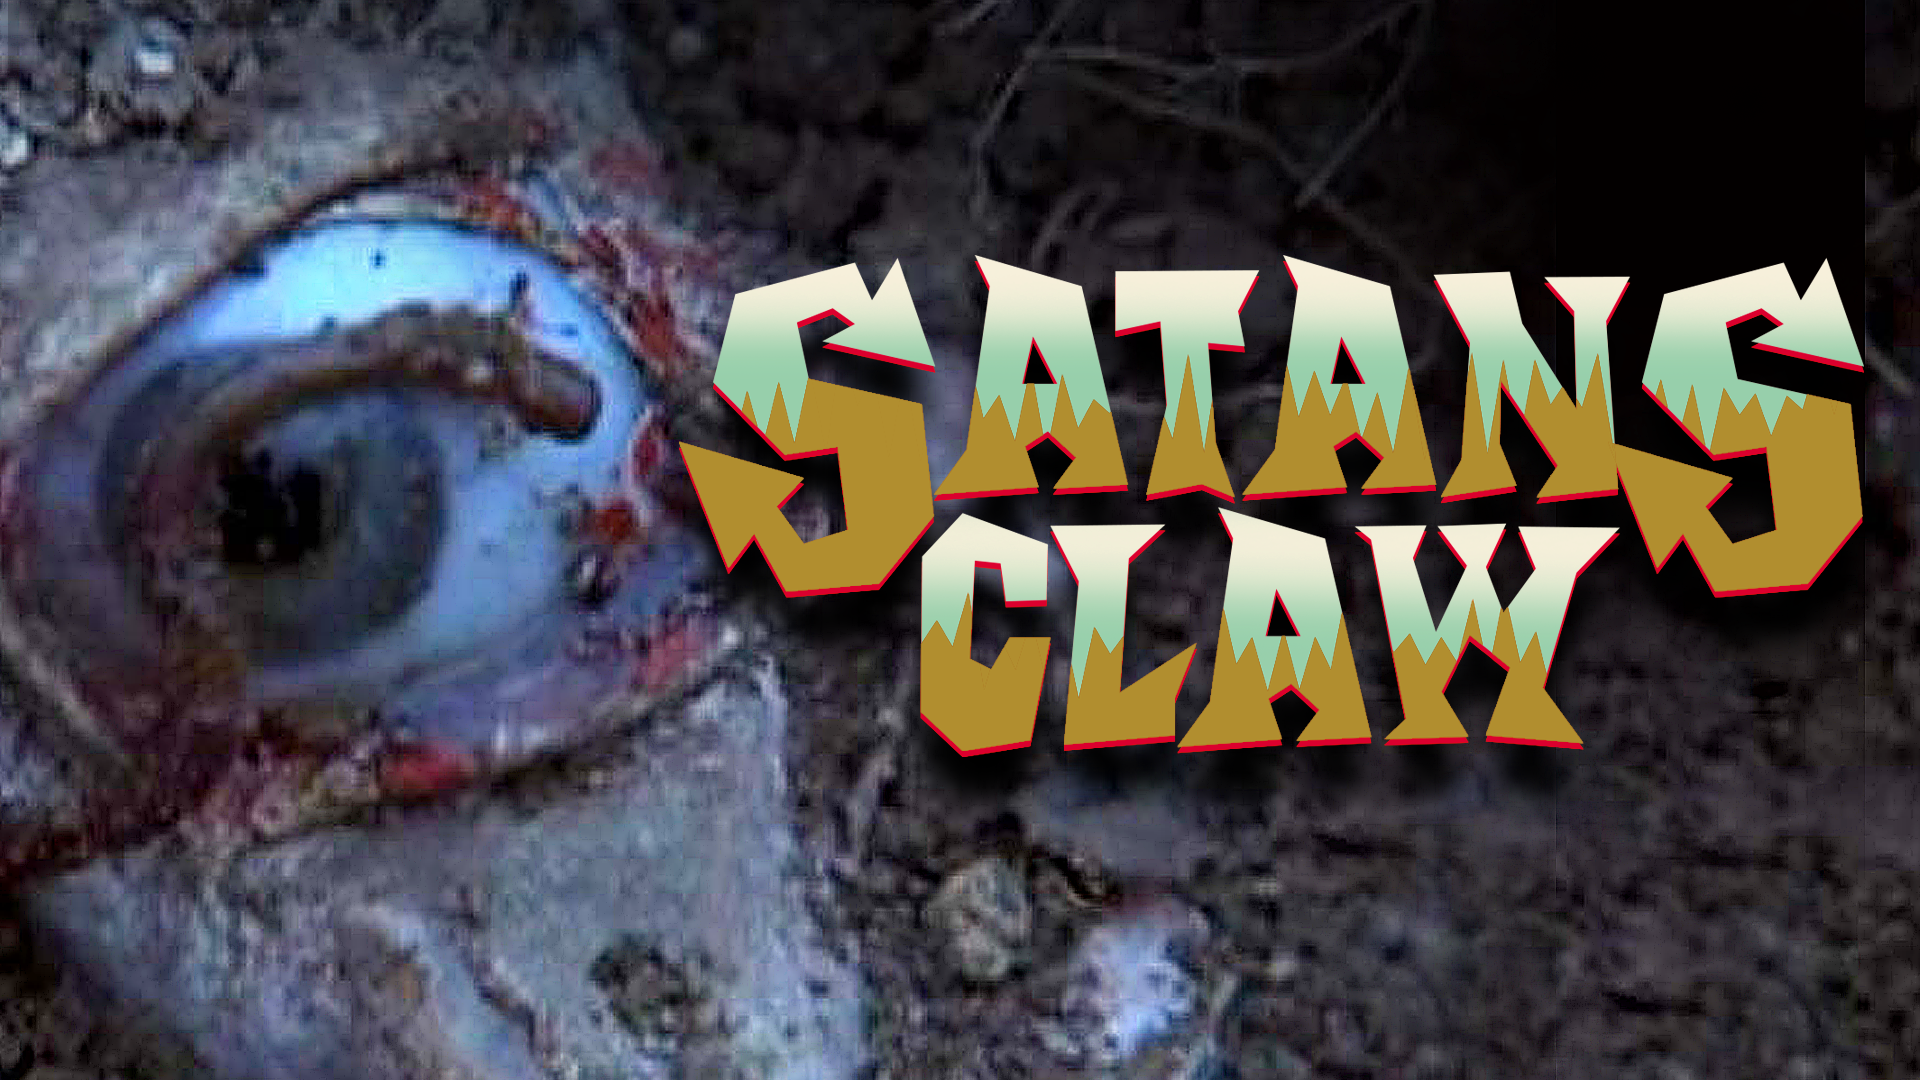 Download Satans Claw Cool Free fonts